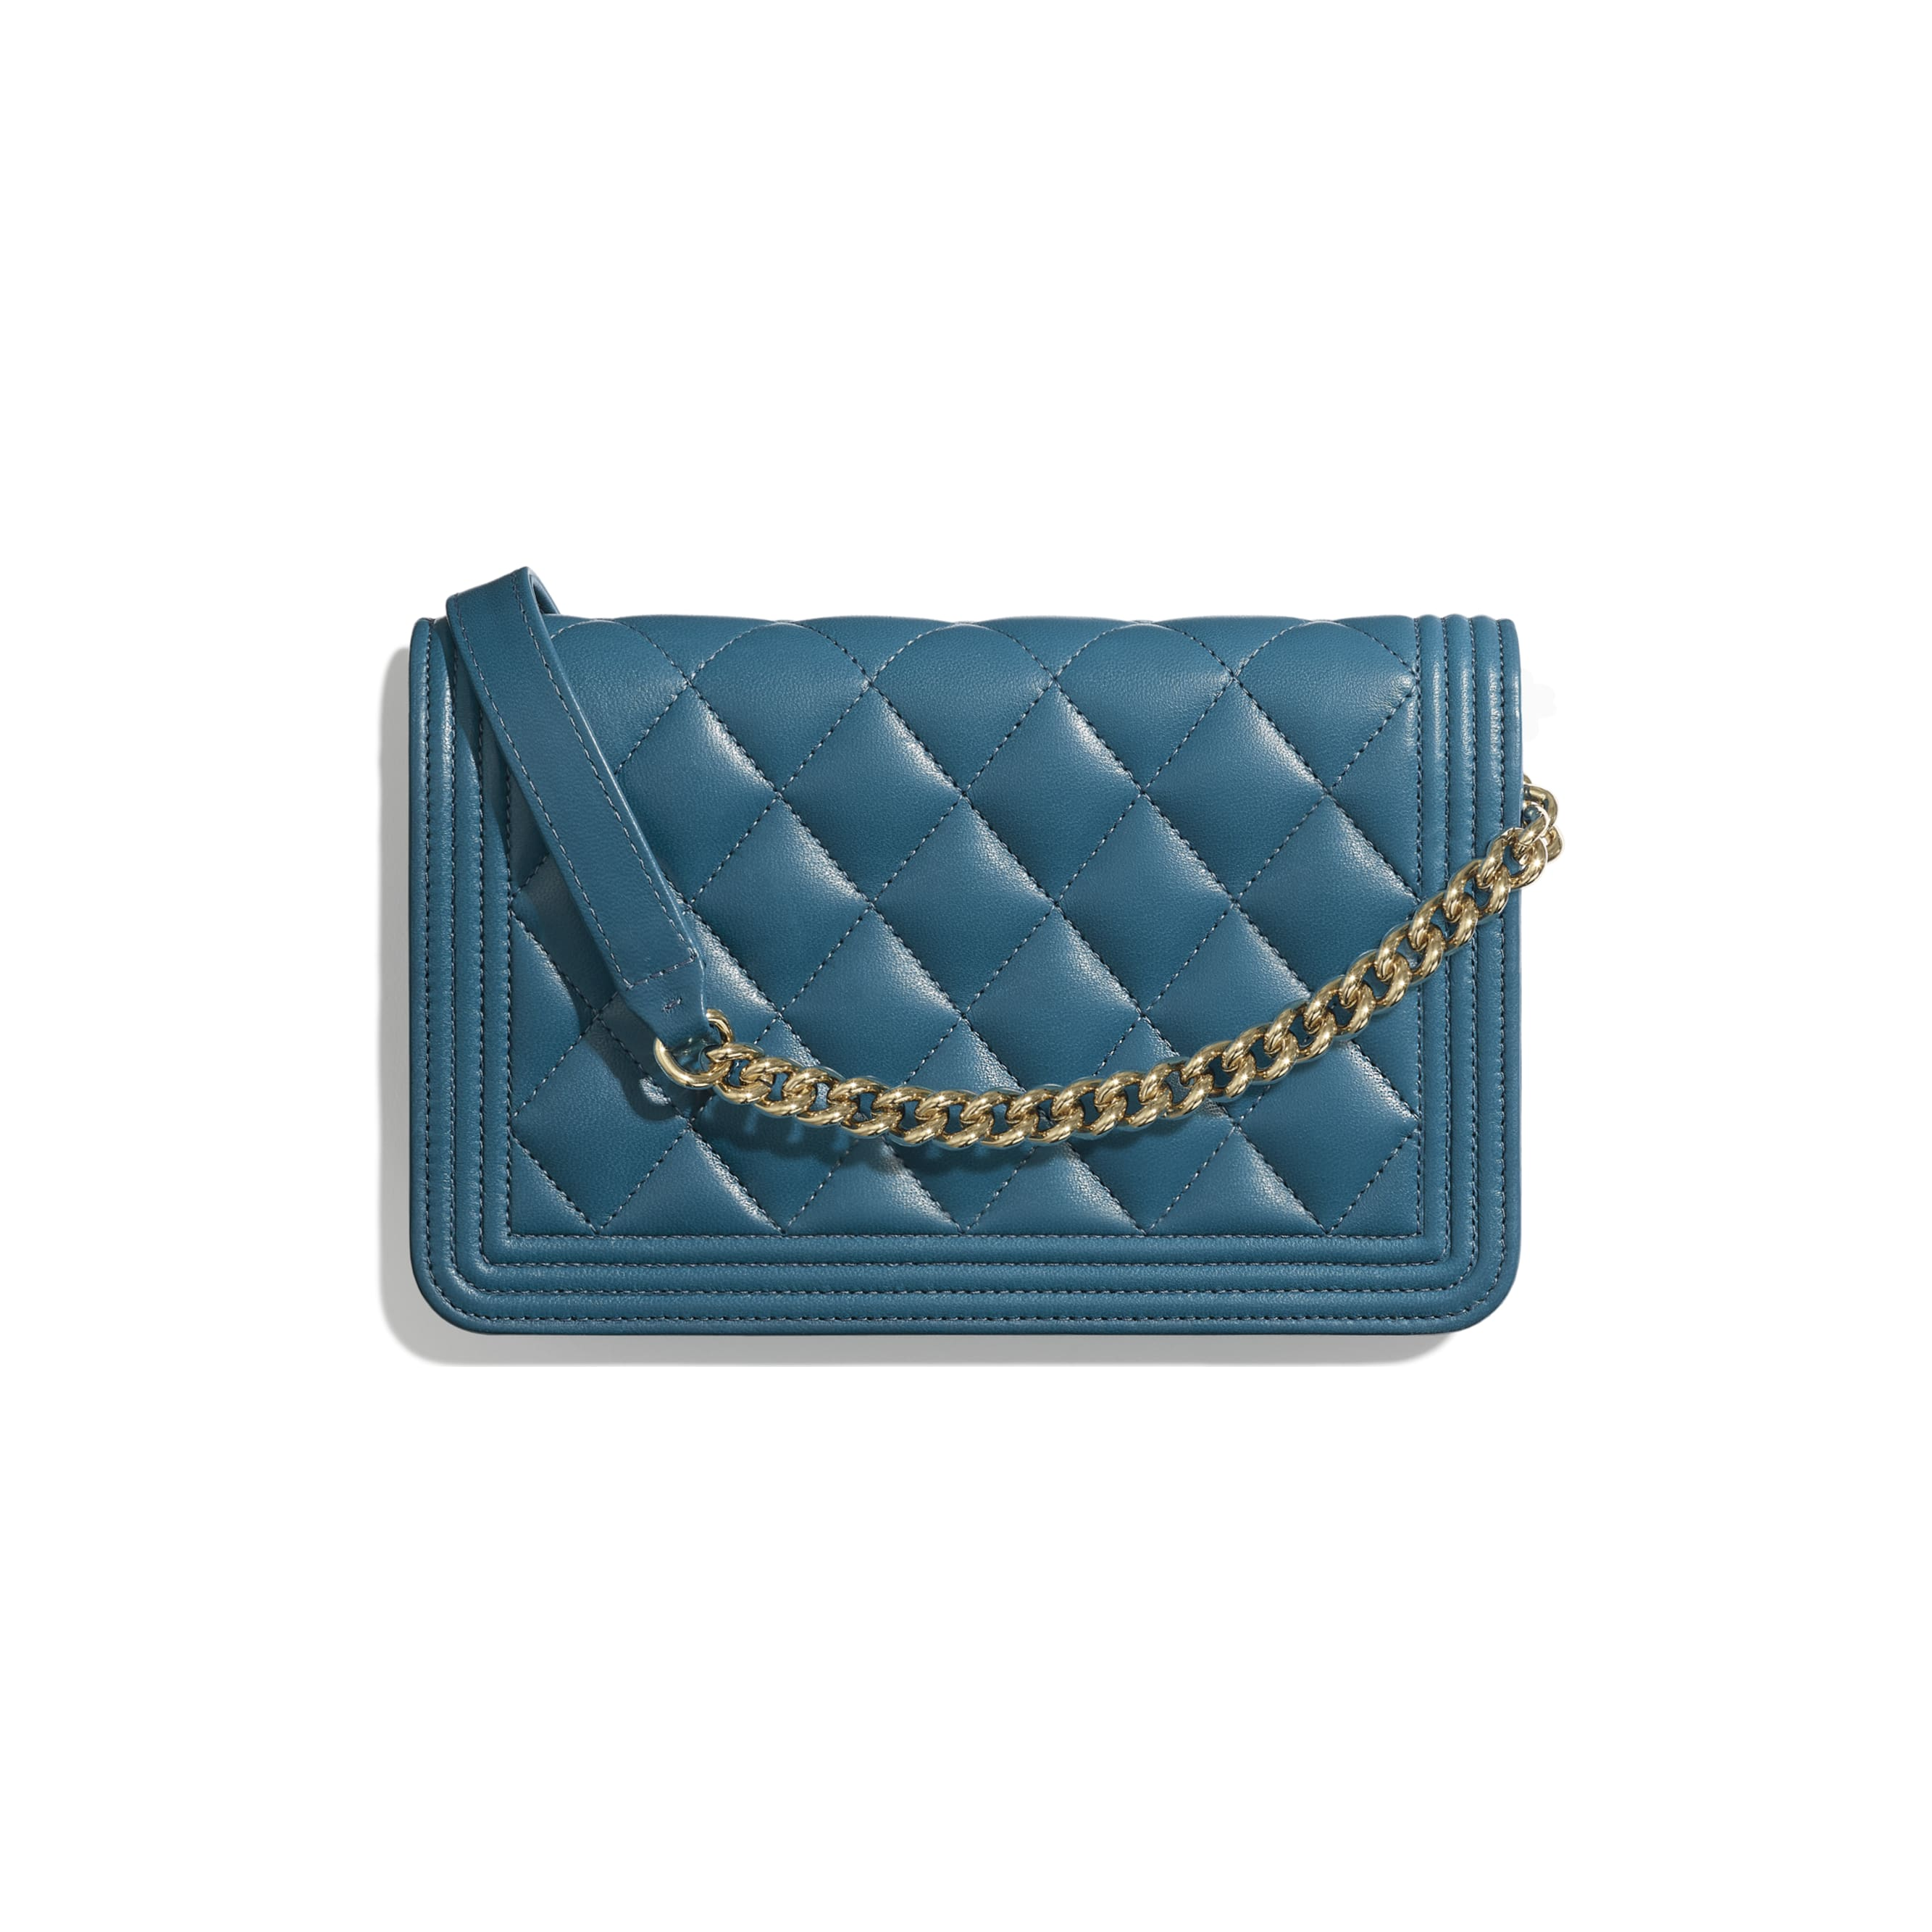 BOY CHANEL Wallet On Chain - Turquoise - Lambskin - CHANEL - Alternative view - see standard sized version